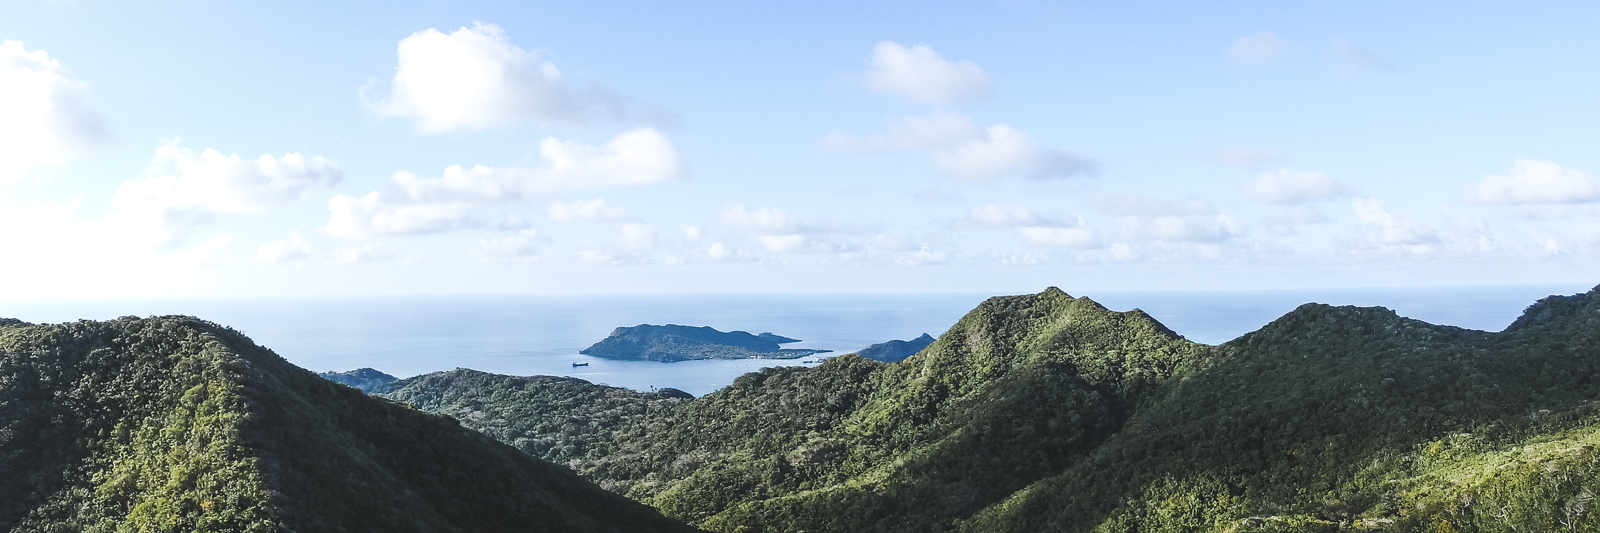 Why travelling Providencia Island shows you true paradise. The view from the top of the hill in the middle of the island. Trekking up here is a must